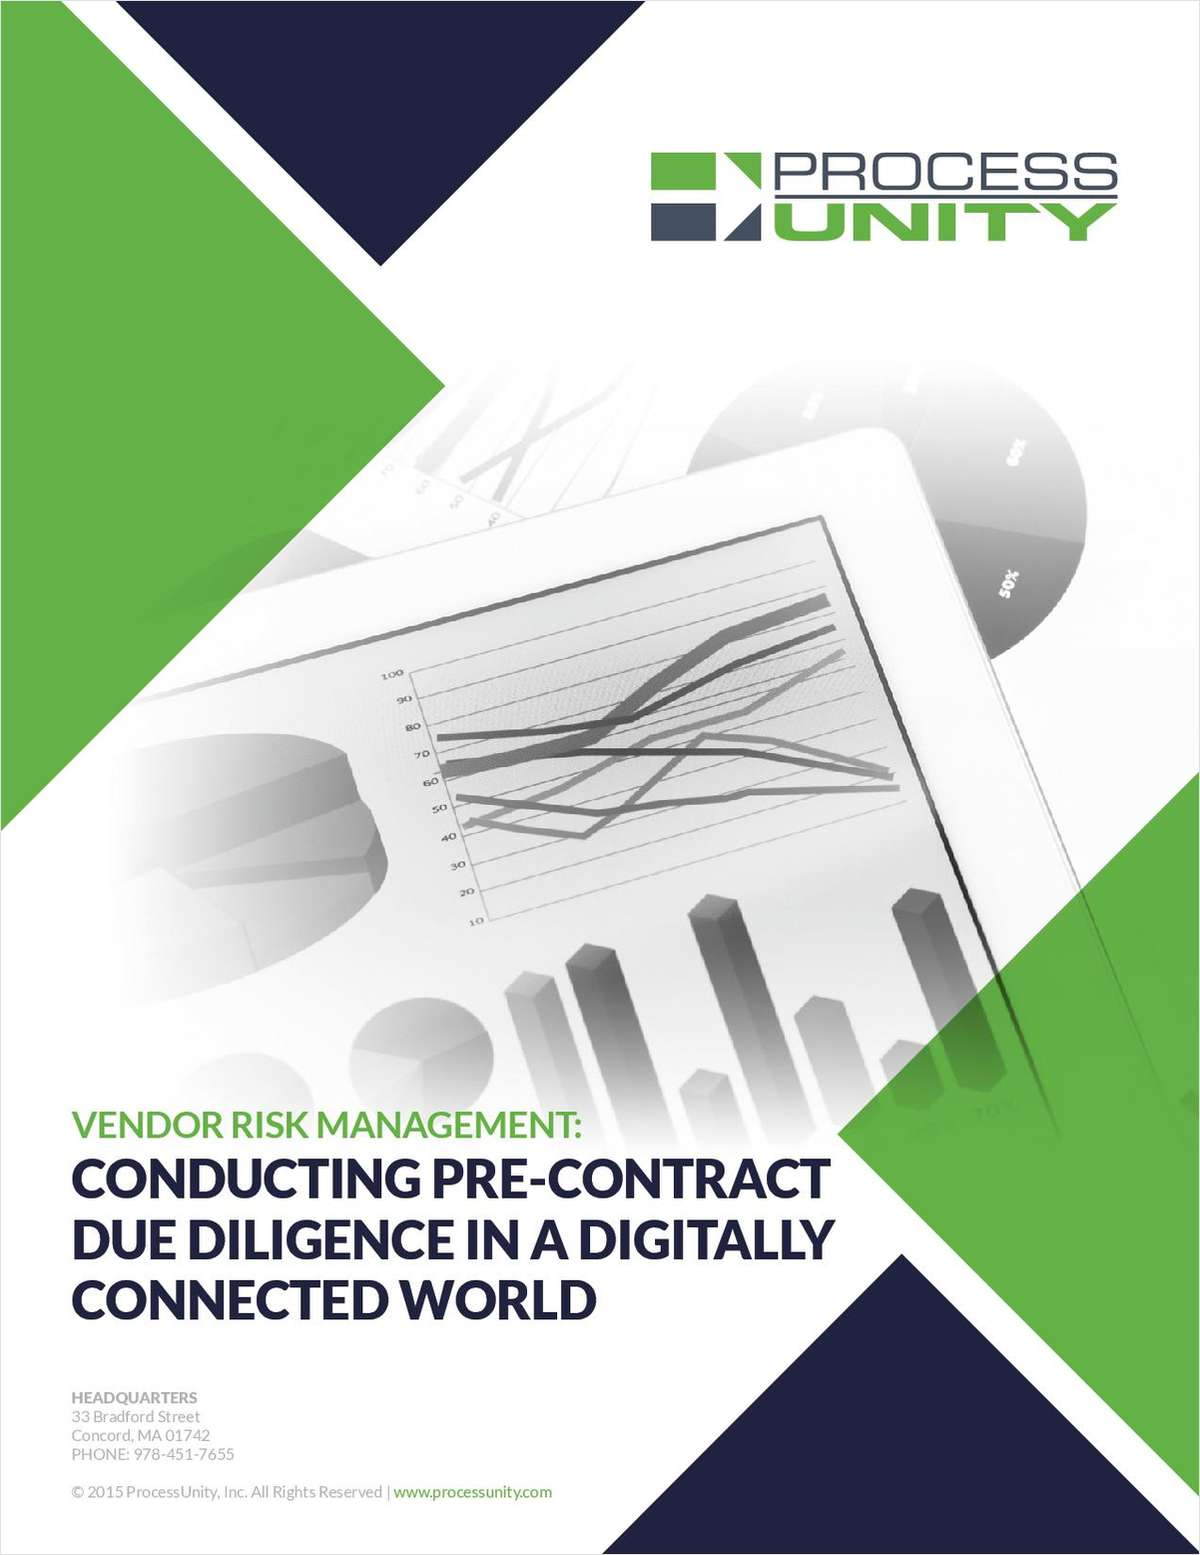 Vendor Risk Management: Conducting Pre-Contract Due Diligence in a Digitally Connected World